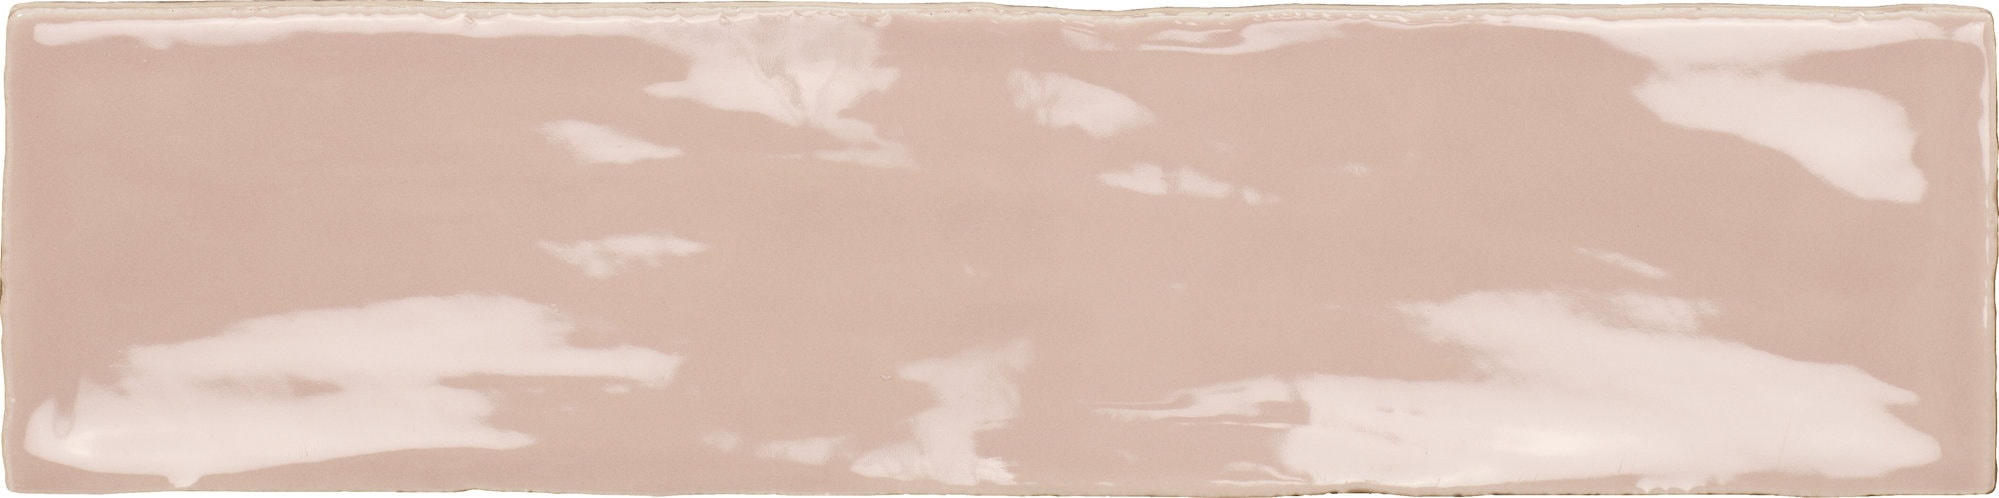 Sample image of the Deco Metro Poitiers pink 7,5x30cm gloss wall tile from Spain.